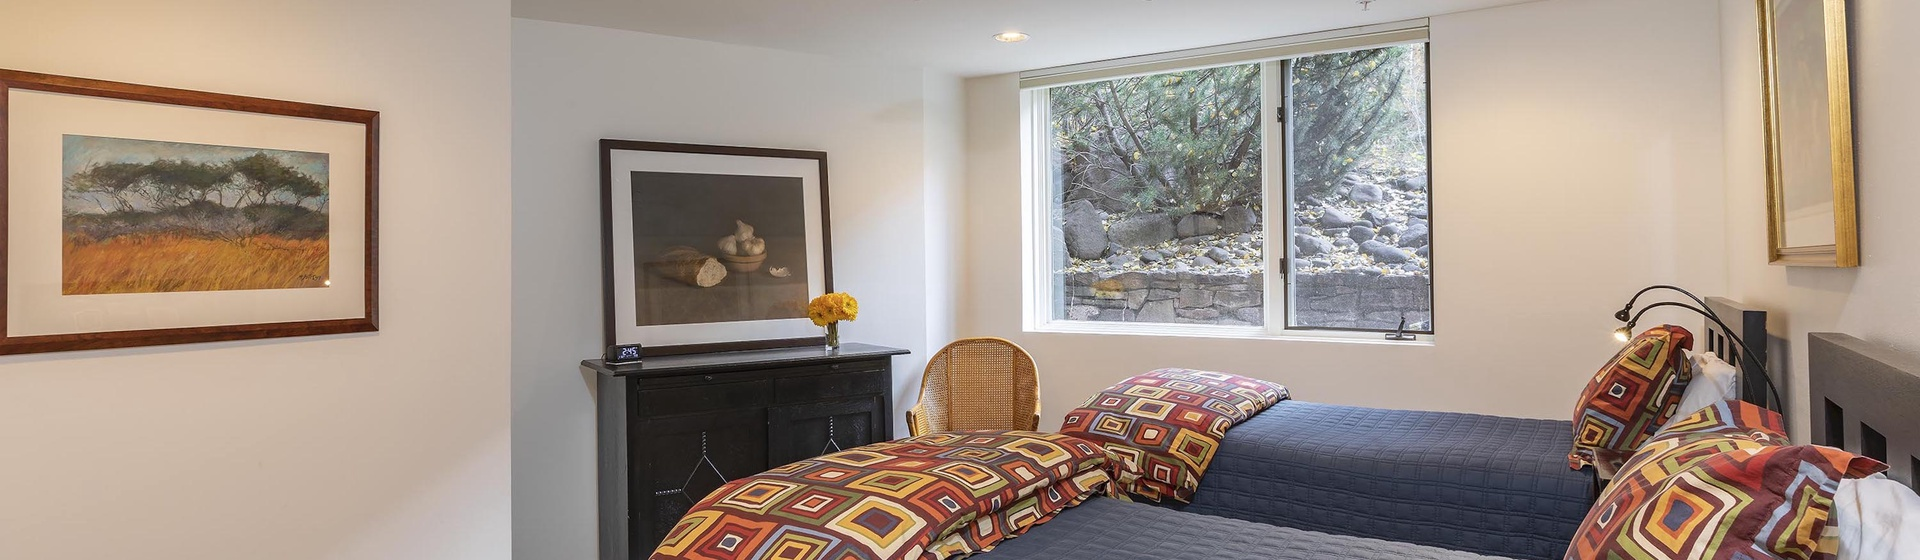 2.07-telluride-rivers-edge-retreat-Guest-bedroom-2-web.jpg